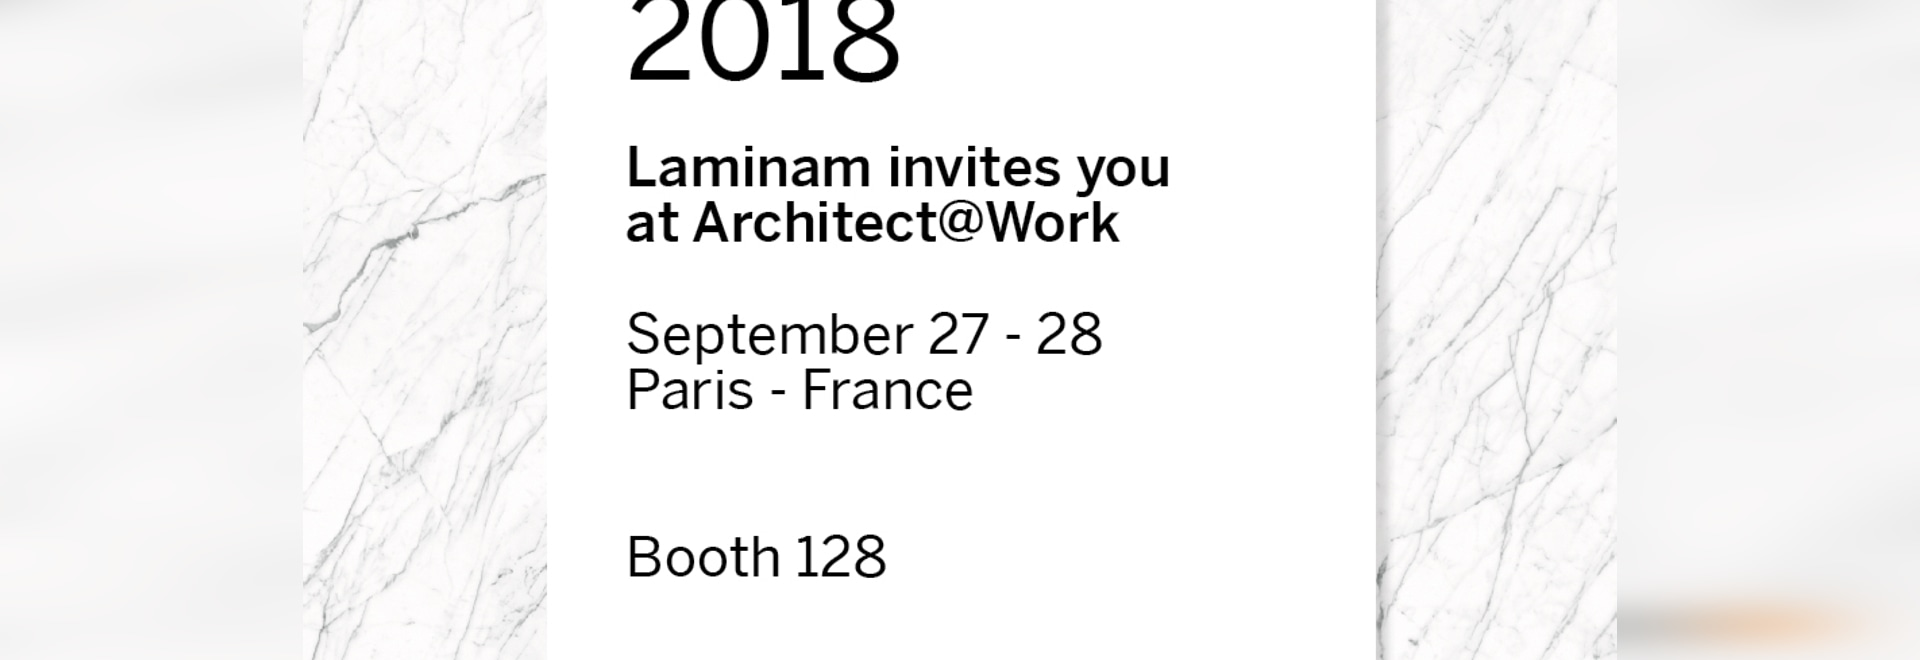 LAMINAM INNOVATION ON STAGE AT ARCHITECT@WORK PARIS